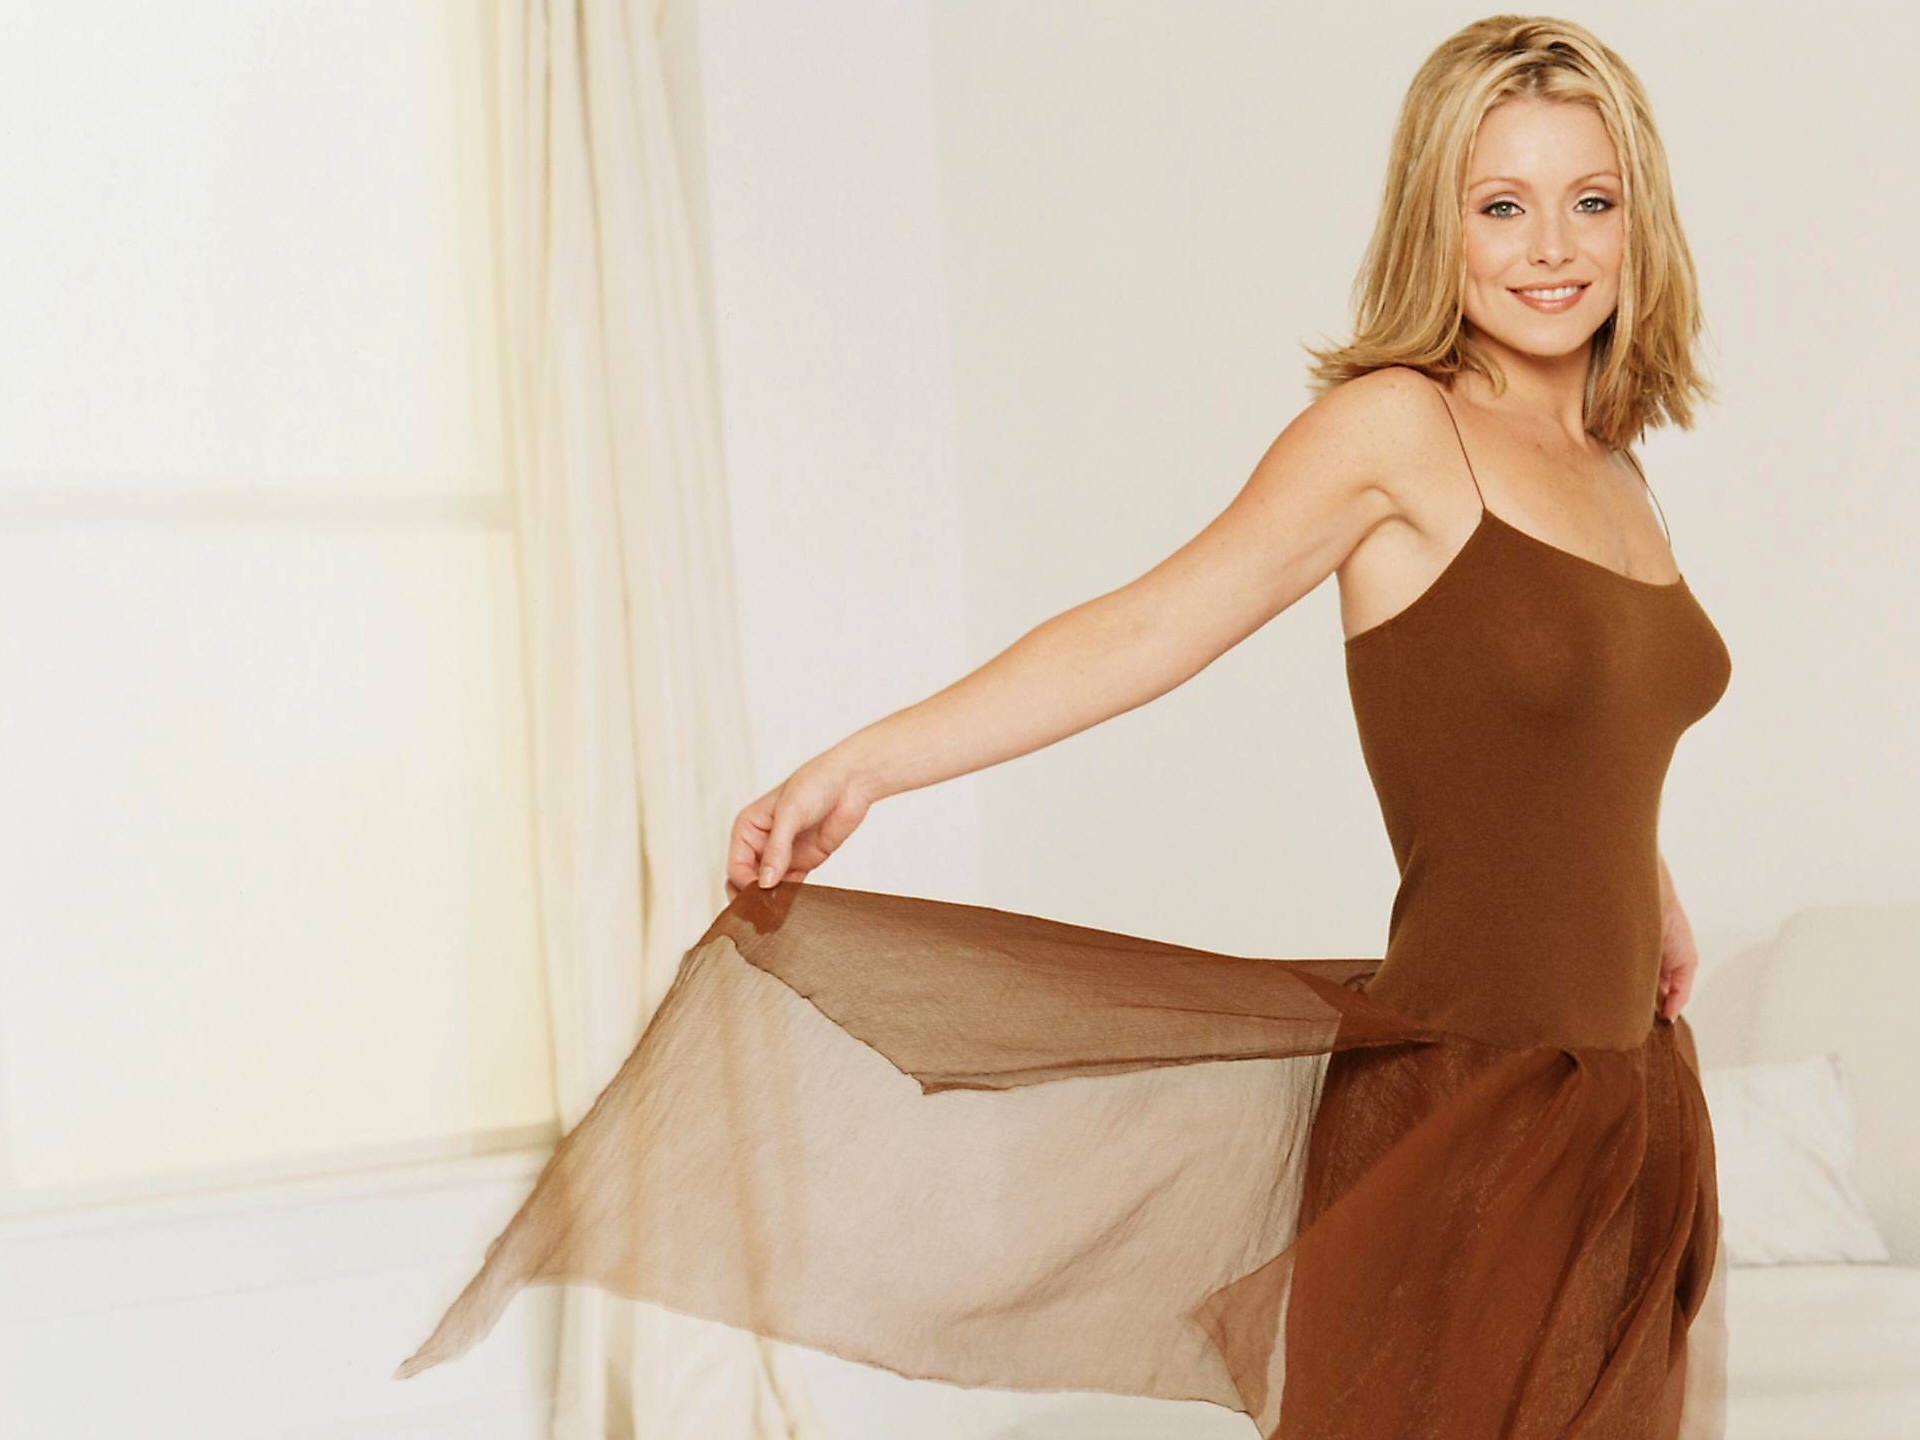 Kelly Ripa Picture - Image 4